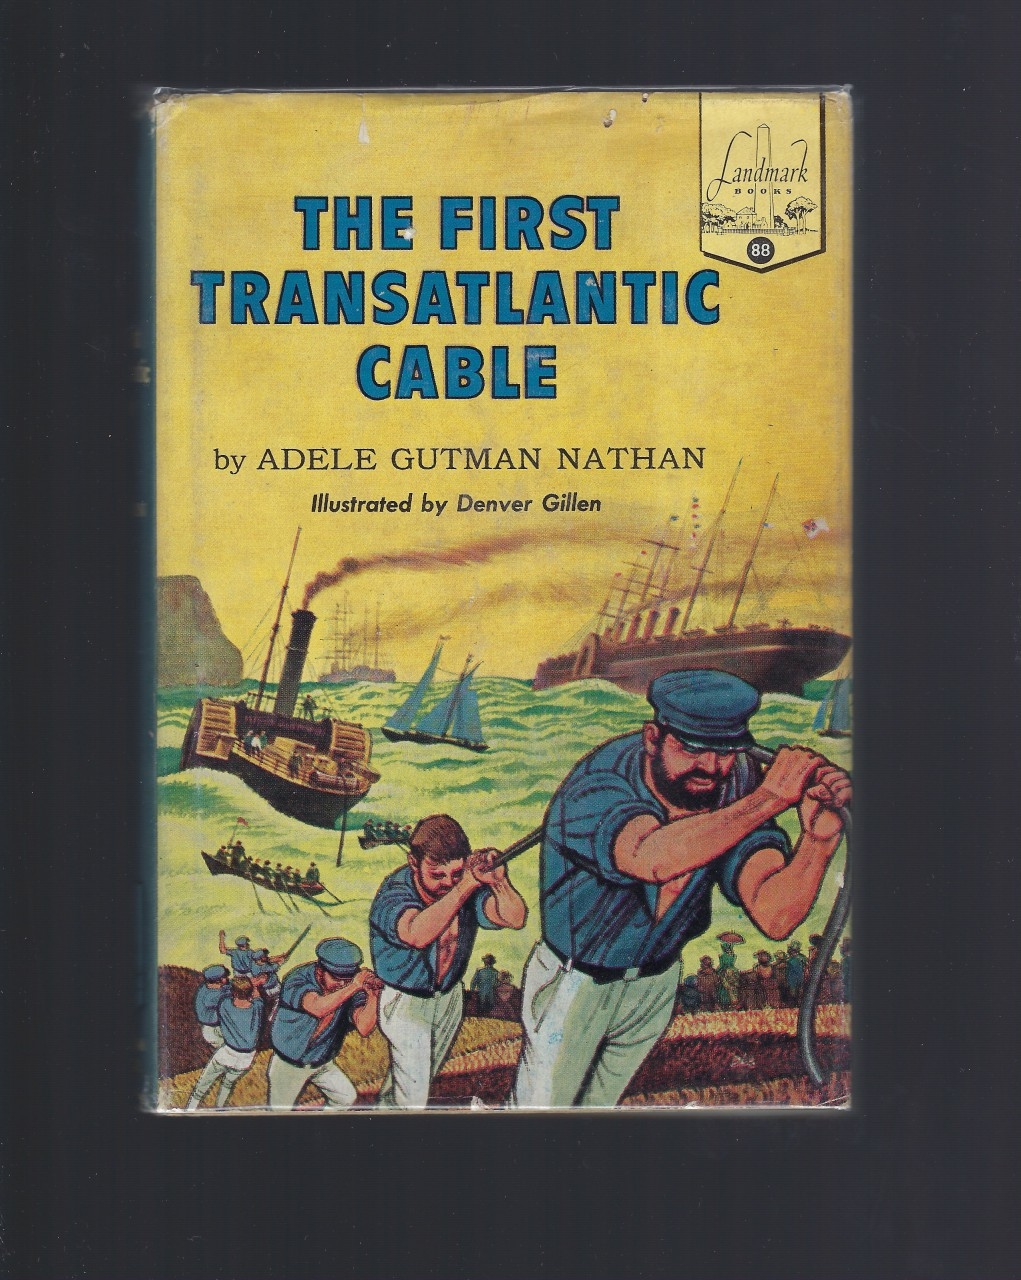 The First Transatlantic Cable Landmark #88 HB/DJ, Adele Gutman Nathan